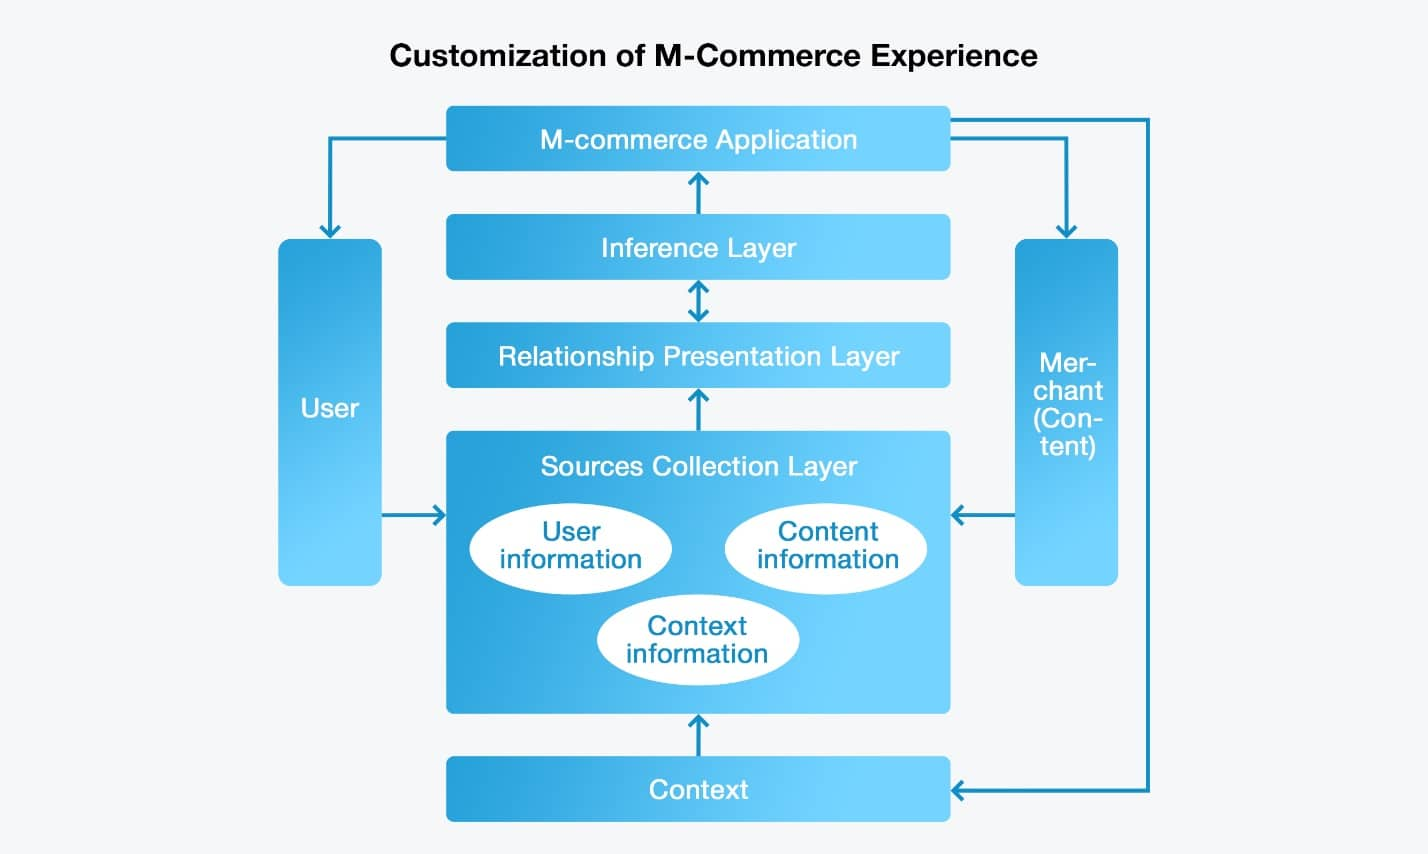 Customization of M-Commerce Experience